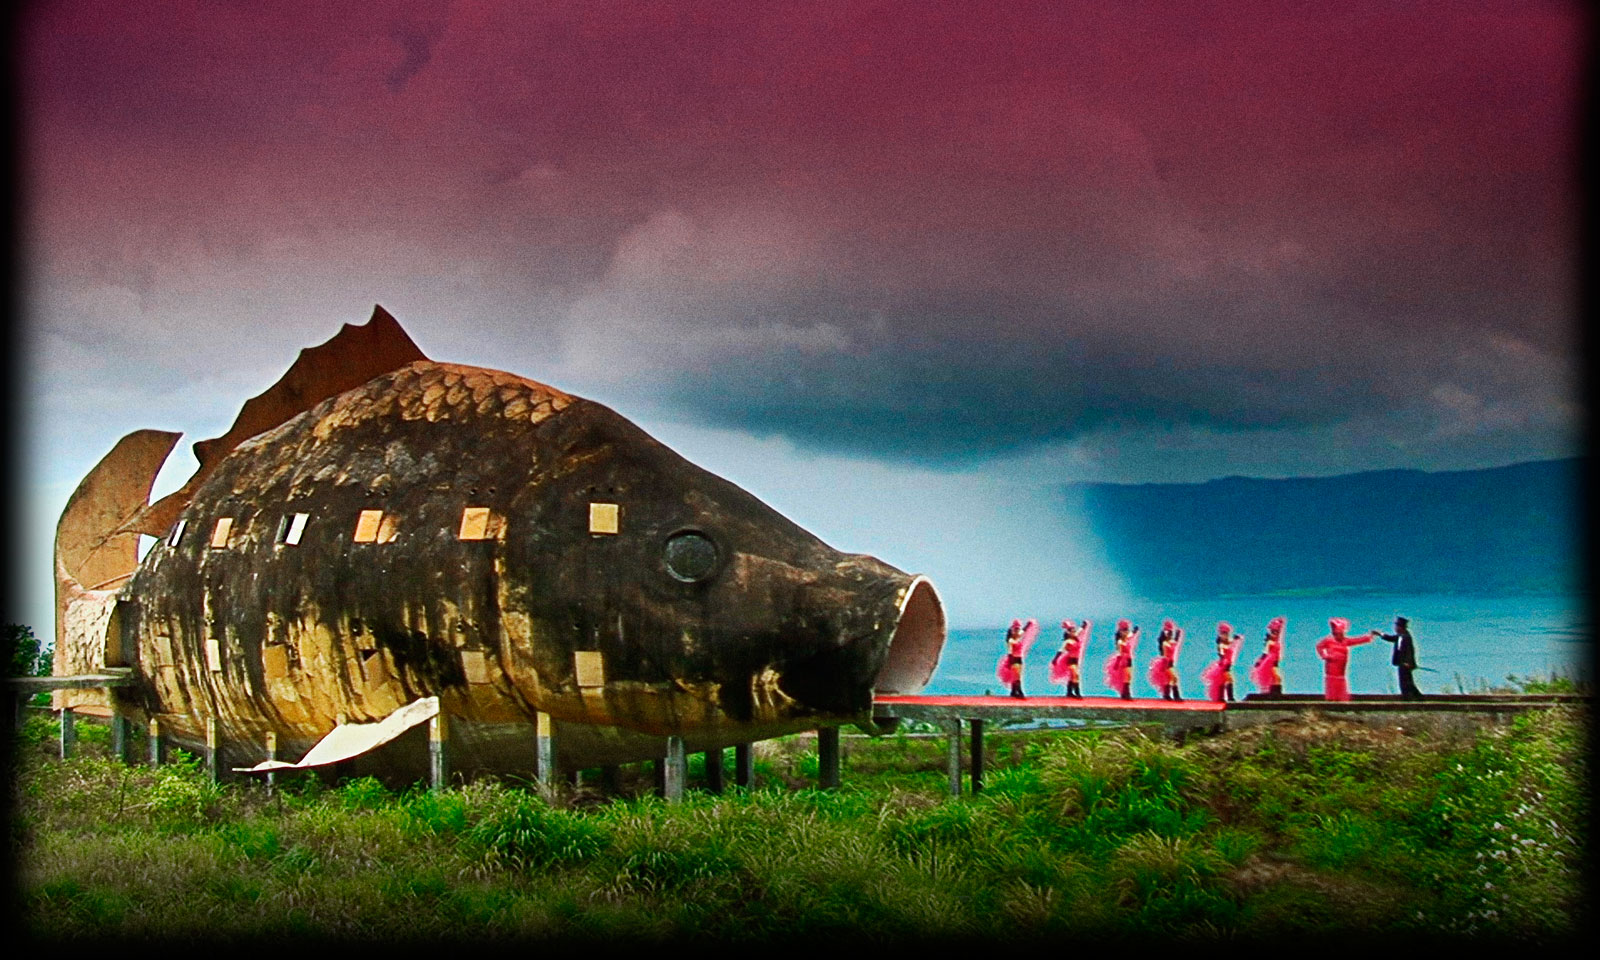 Girls in pink dresses dance into the mouth of a giant fish, a scene leading up to the final fictionalized and self-created homage to the genocidal killers.